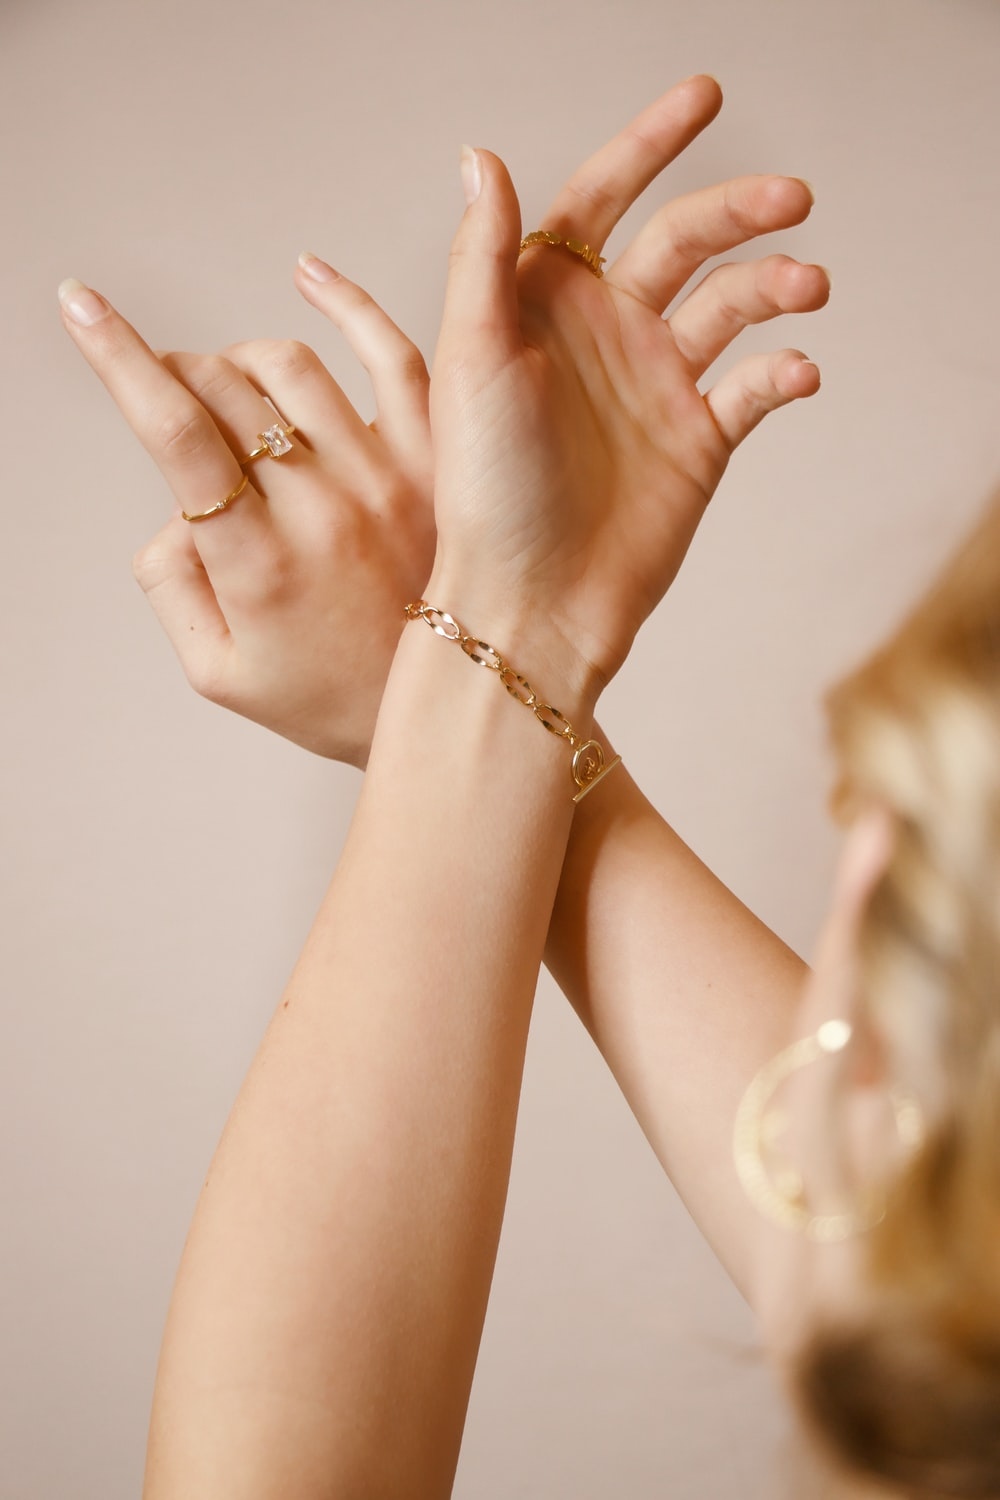 woman wearing gold ring and gold bracelet